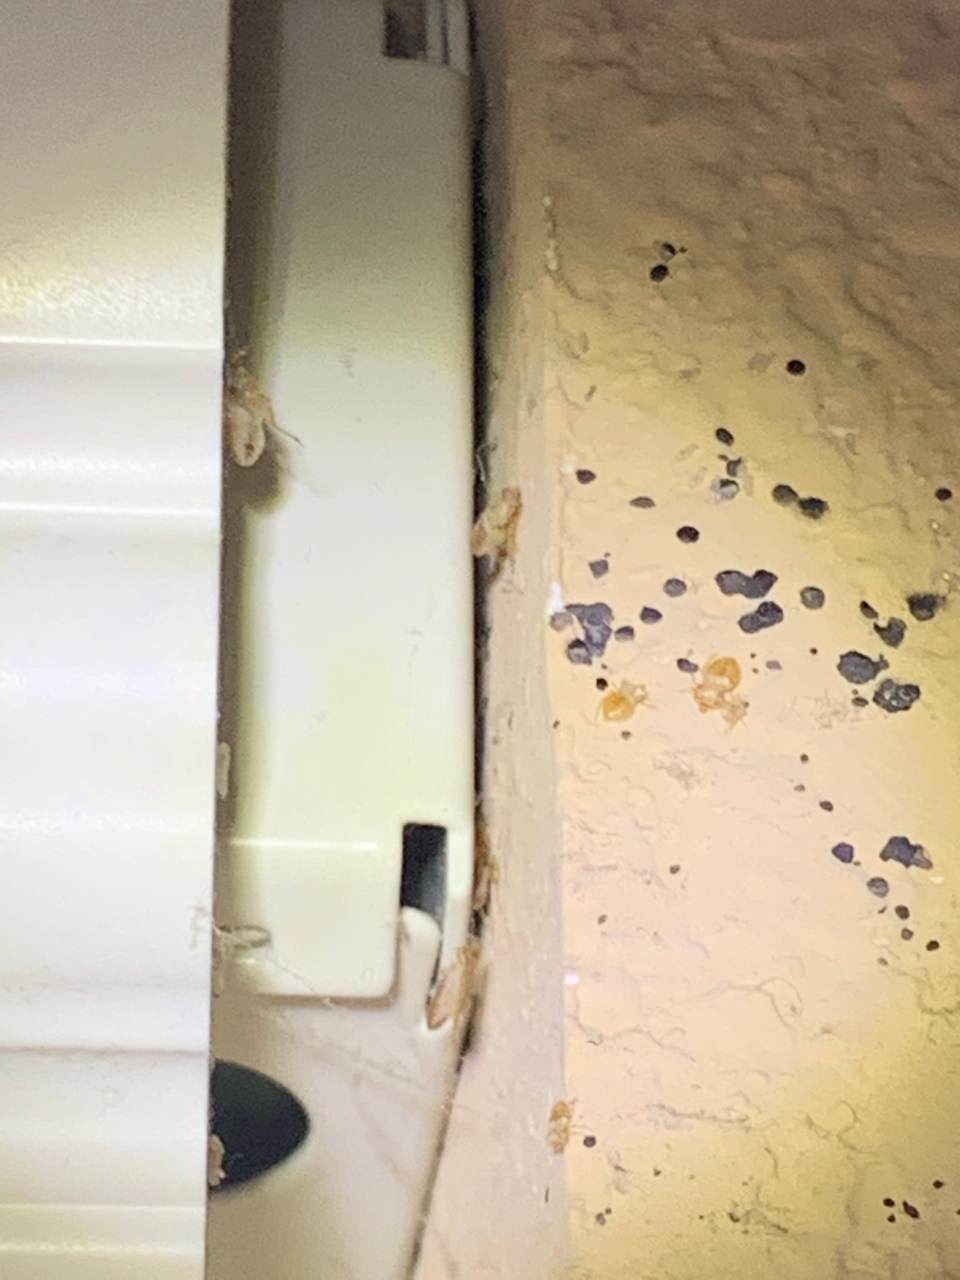 Like what is pictured, the easiest way to spot bed bug activity is to locate their poop or excrement. The shed skins shown are also a big tell that bed bugs are present.